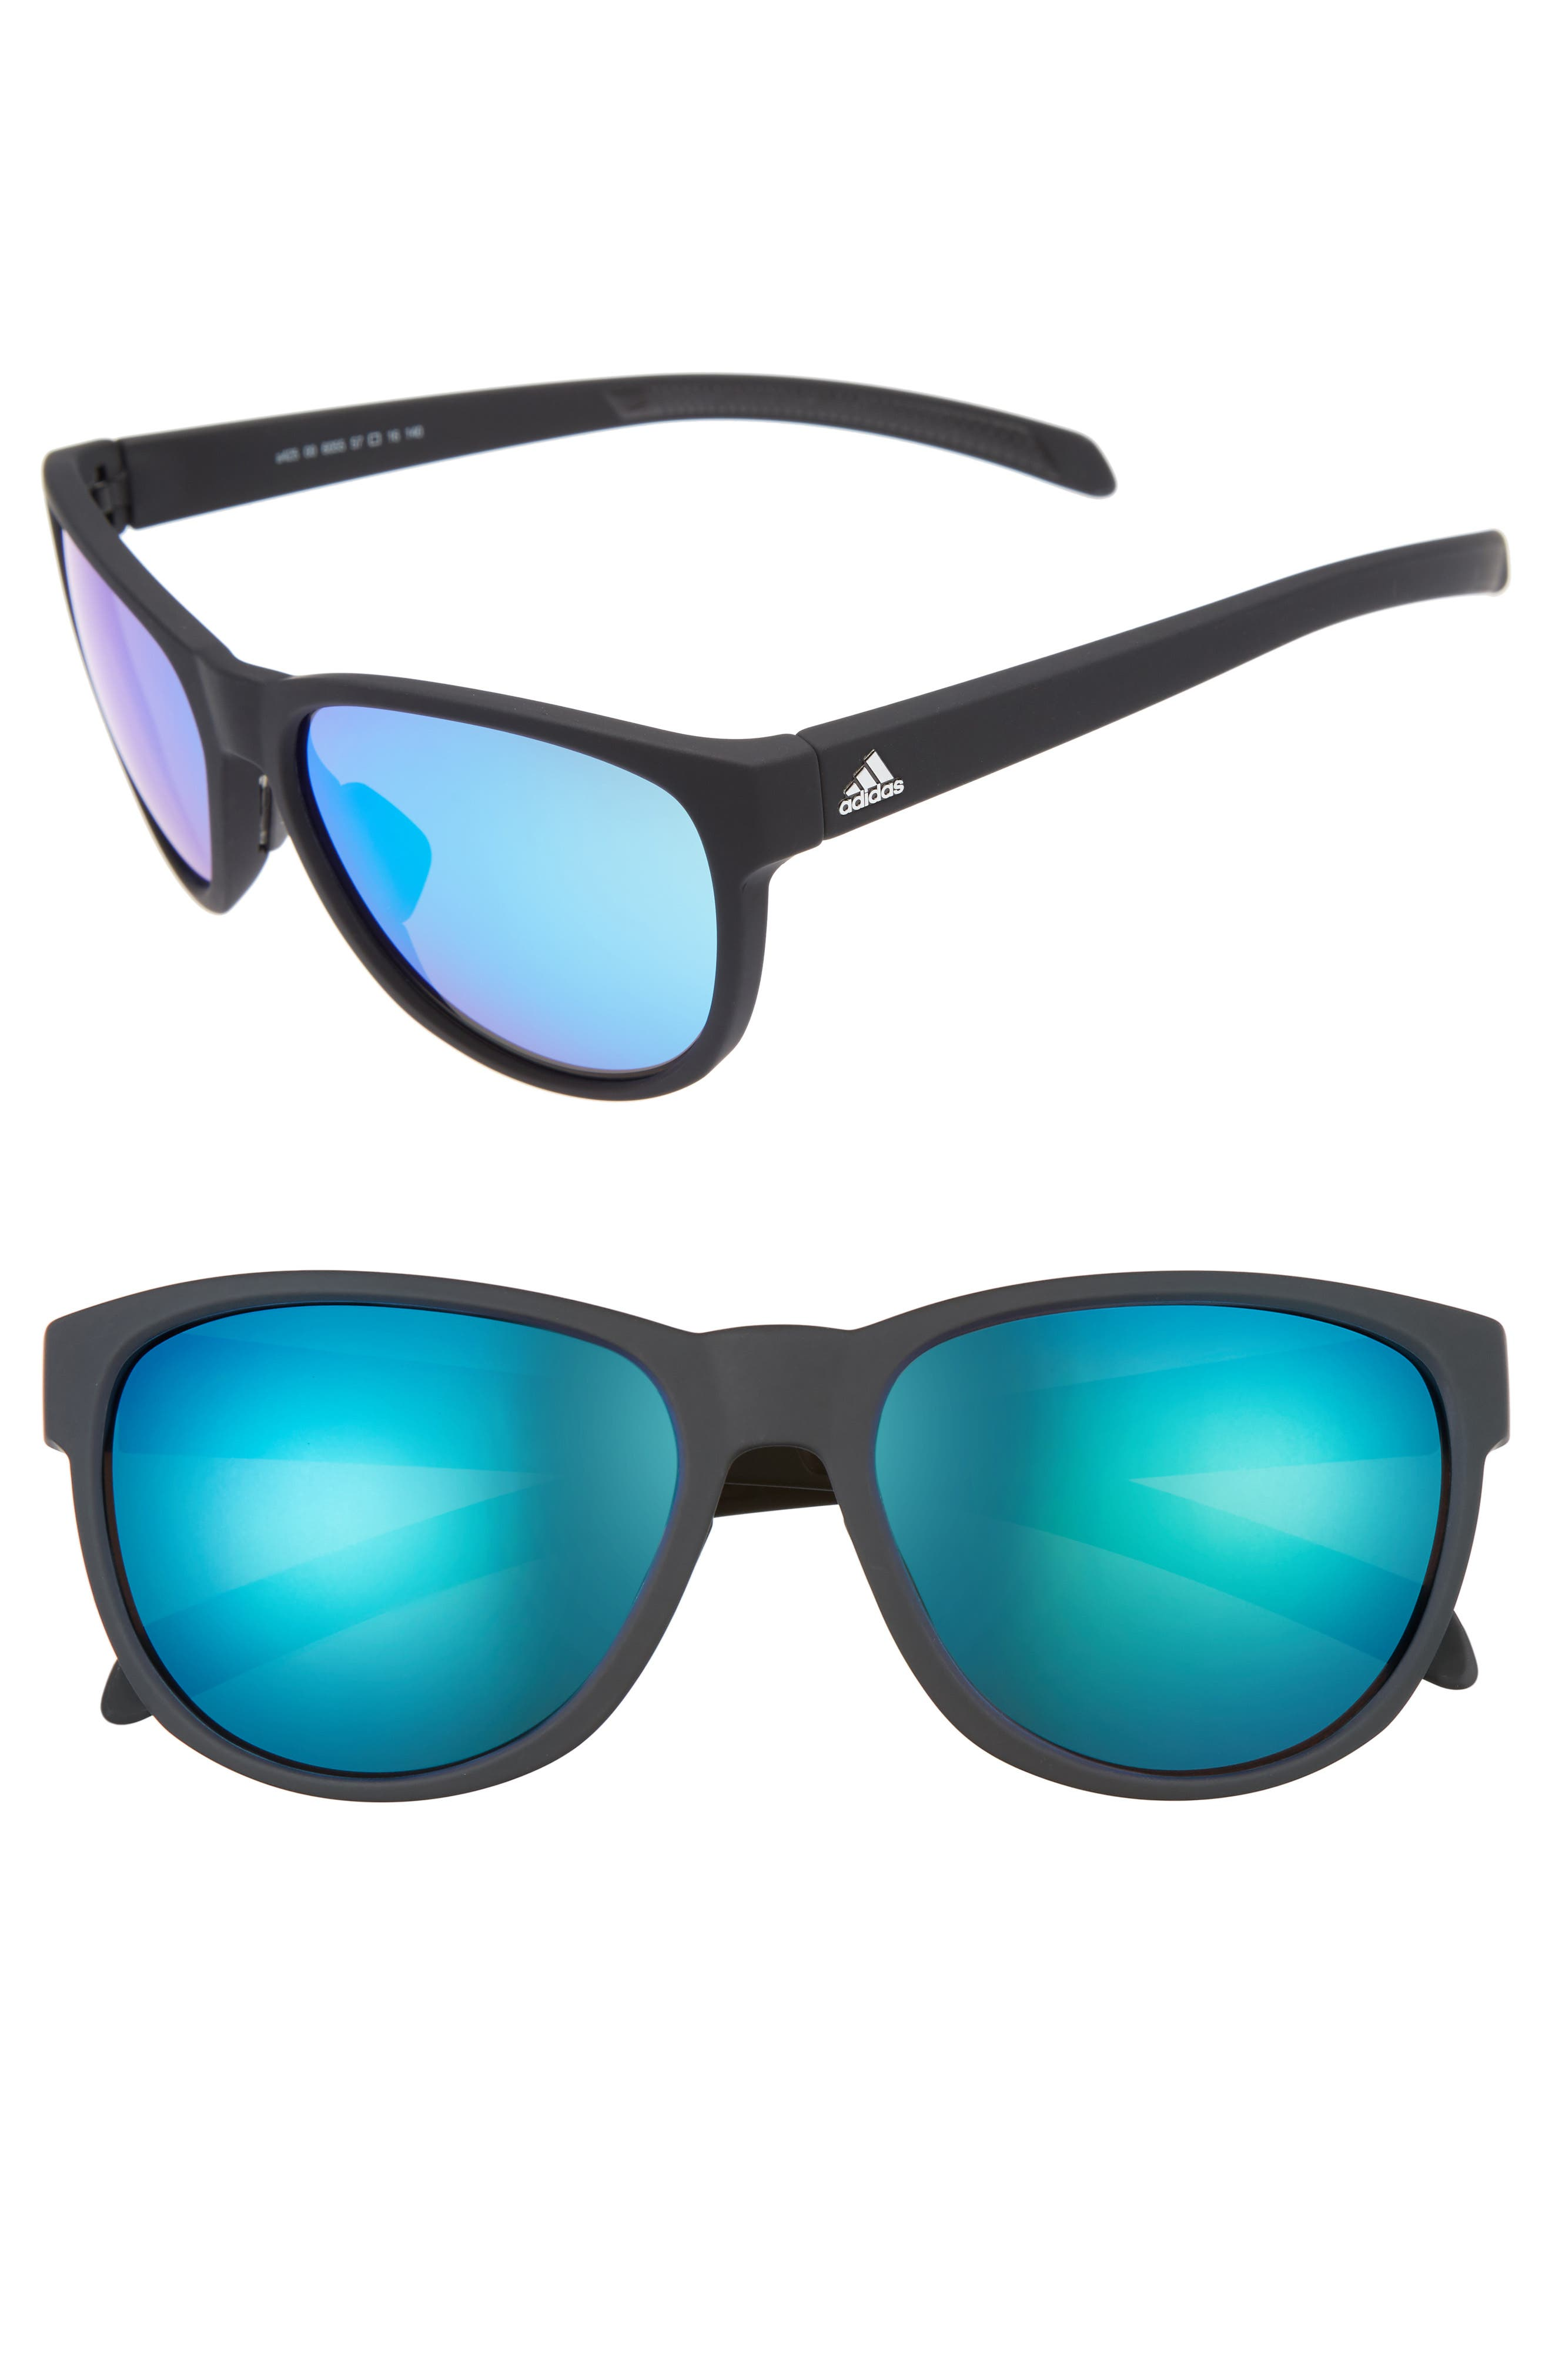 Wildcharge 57mm Mirrored Sunglasses,                         Main,                         color, 001